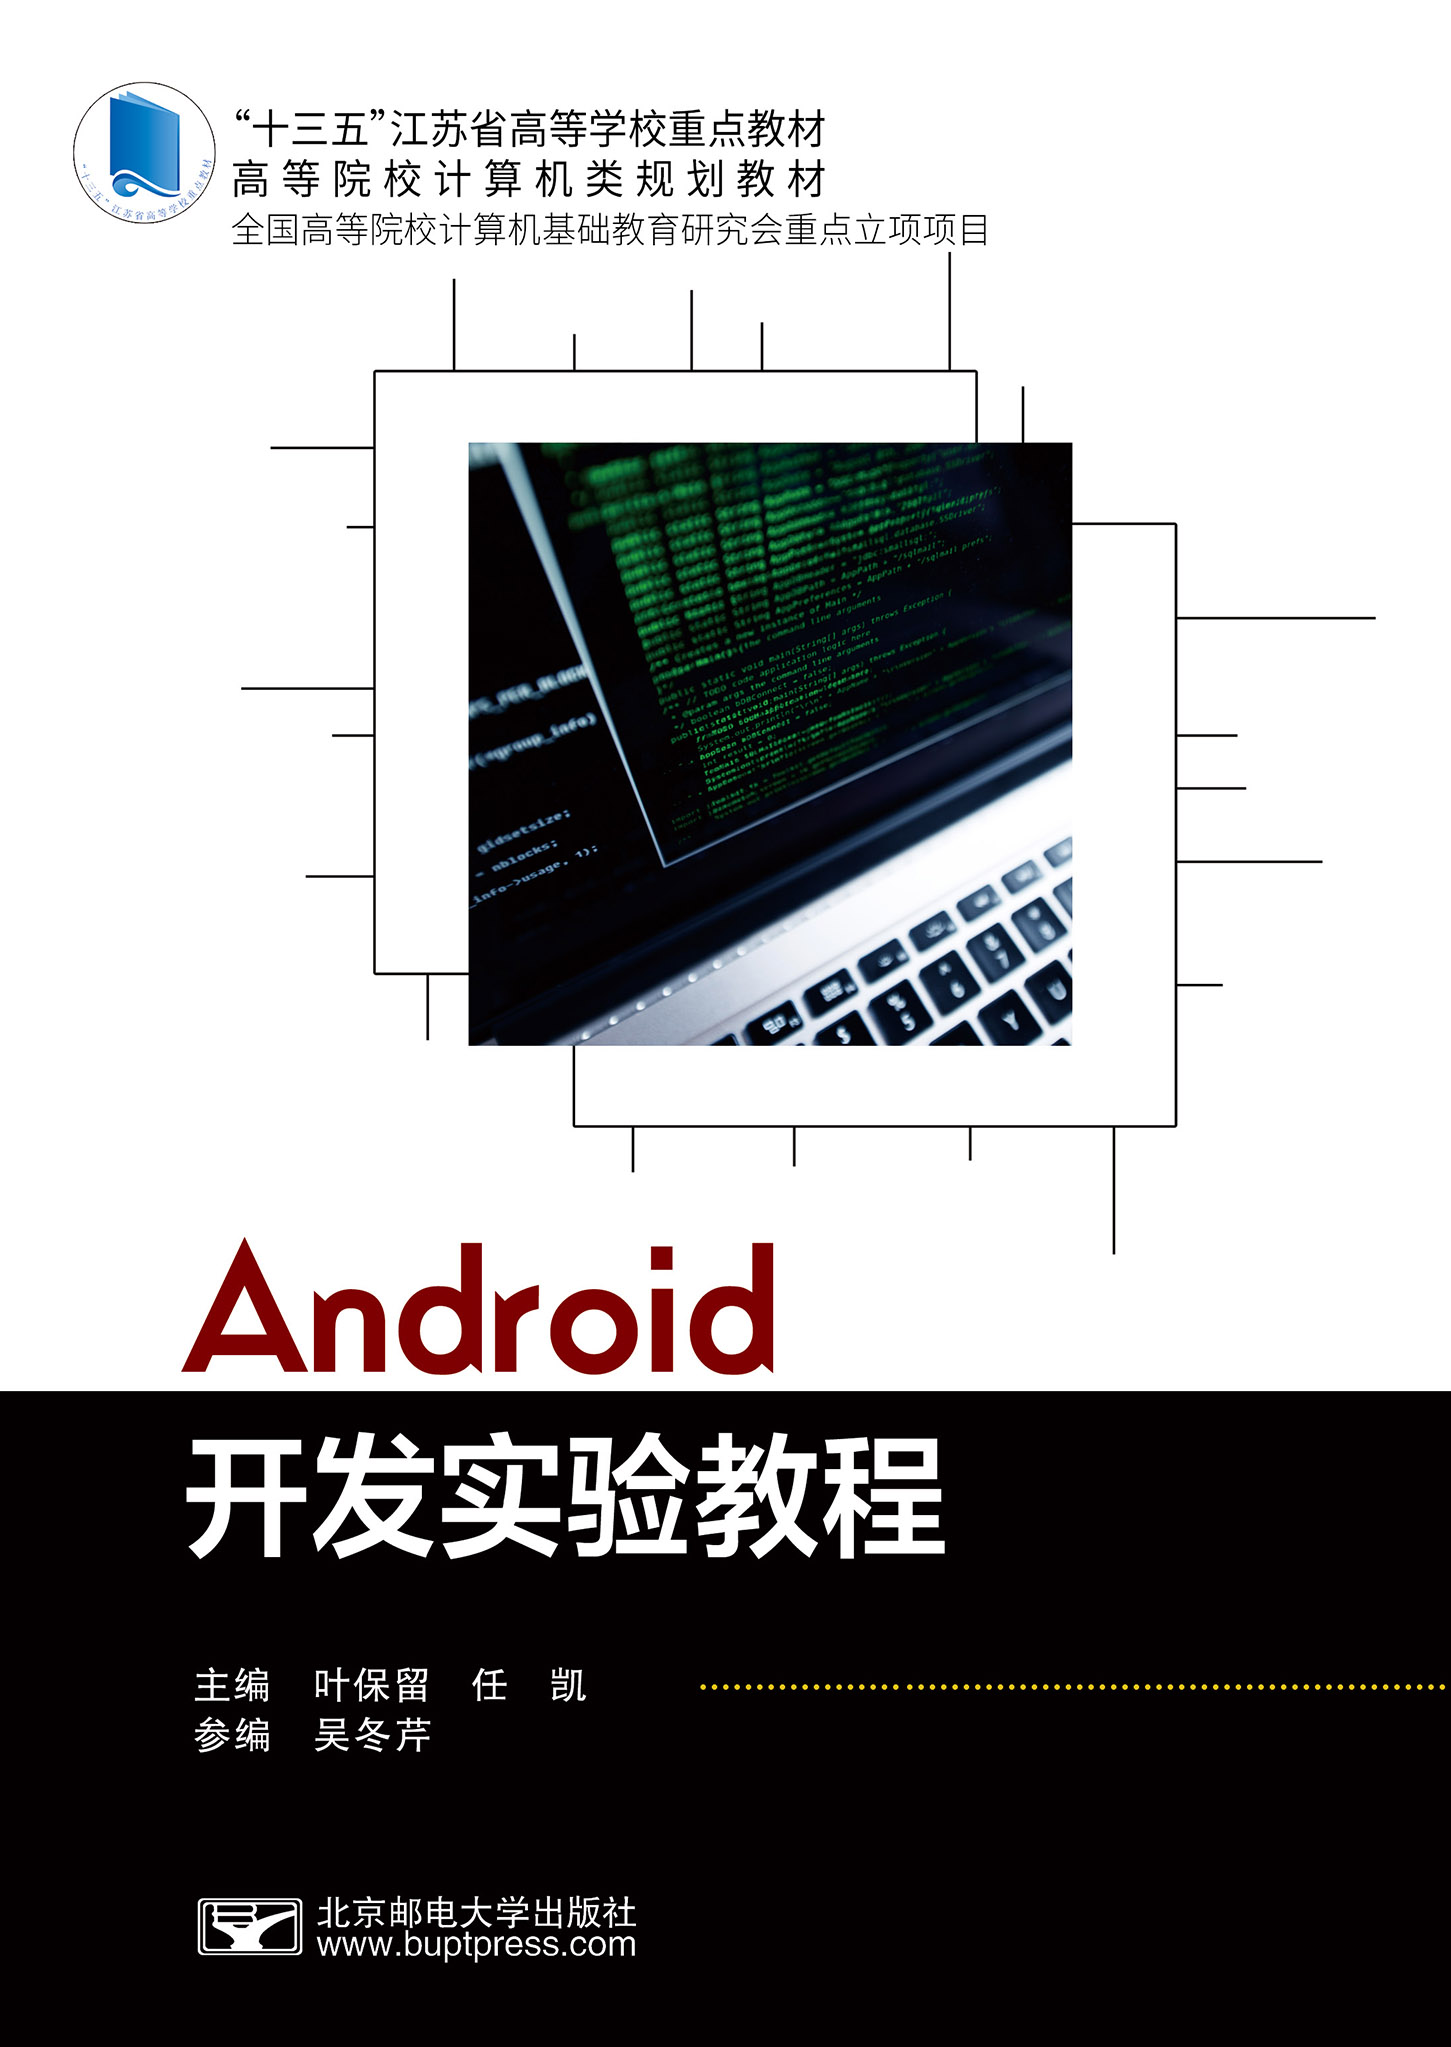 Android�_�l���教程